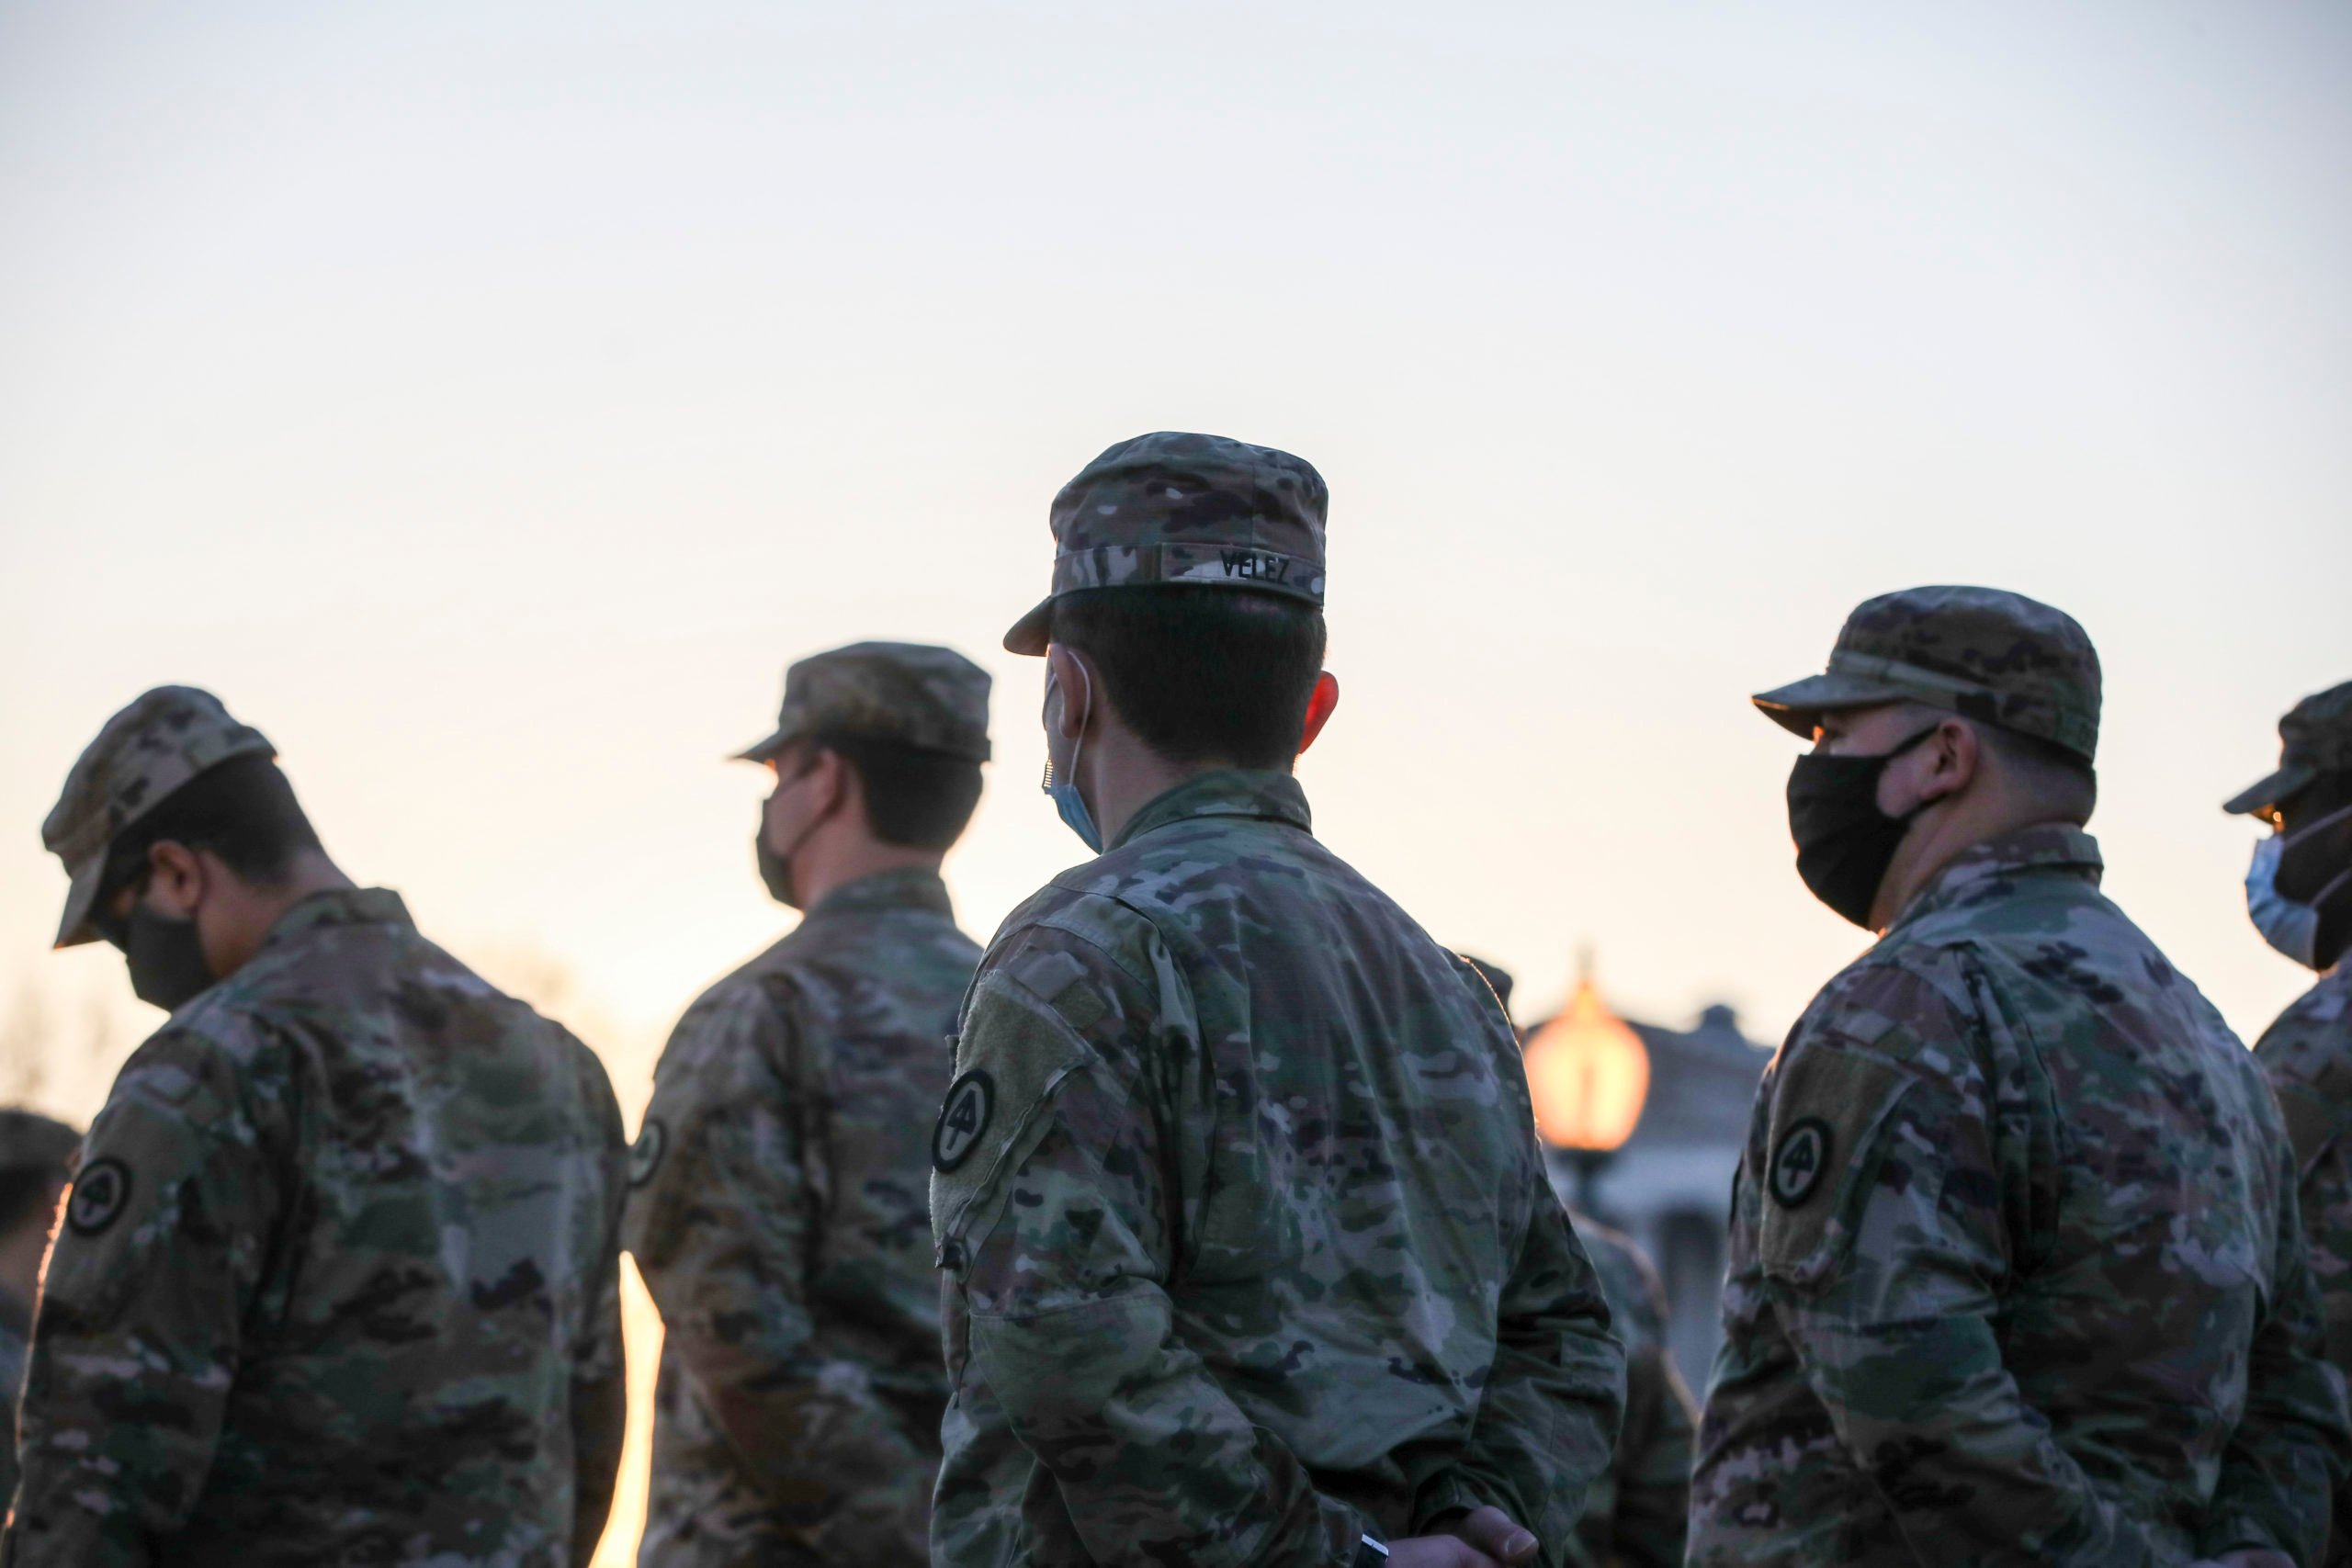 WASHINGTON, DC - JANUARY 12: Members of the U.S. National Guard arrive at the U.S. Capitol on January 12, 2021 in Washington, DC. The Pentagon is deploying as many as 15,000 National Guard troops to protect President-elect Joe Biden's inauguration on January 20, amid fears of new violence. (Photo by Tasos Katopodis/Getty Images)